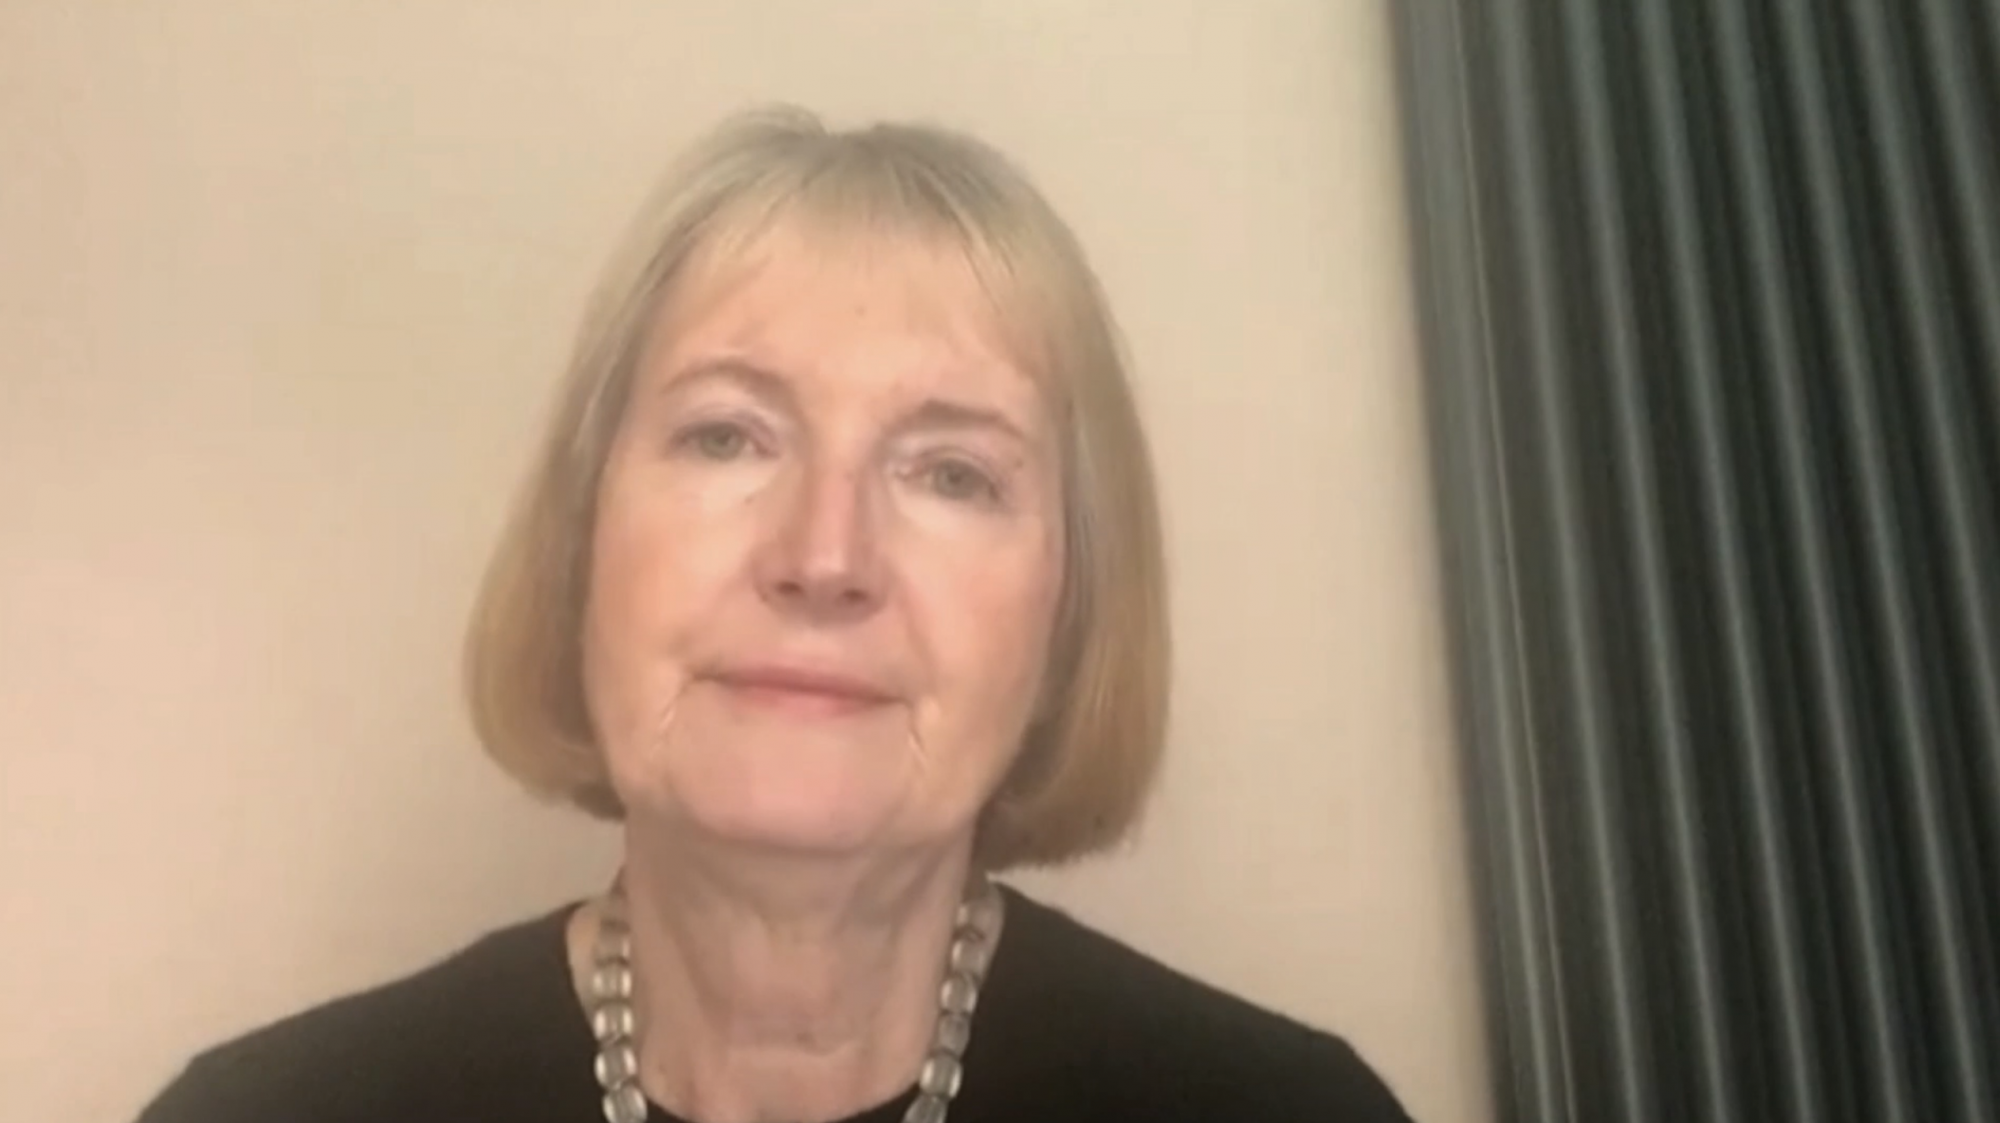 Labour MP Harriet Harman says Sir David Amess' death cannot be 'the price of democracy' - channel 4